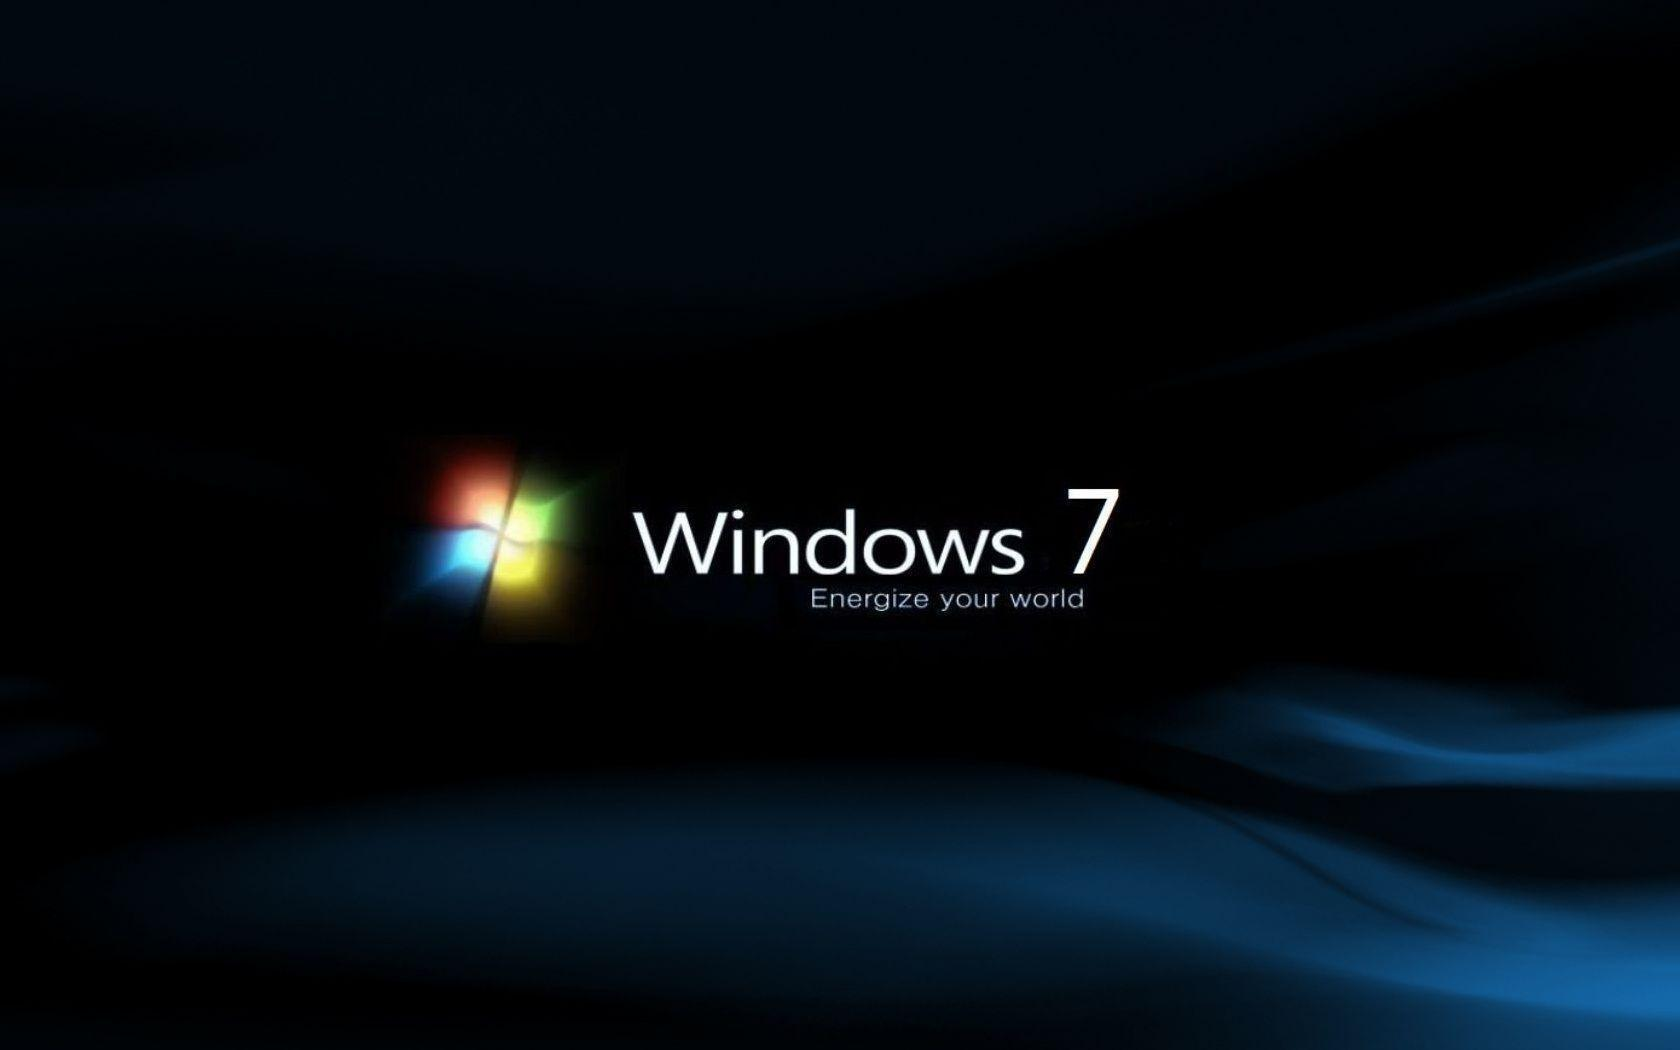 windows 7 backgrounds is black wallpaper cave